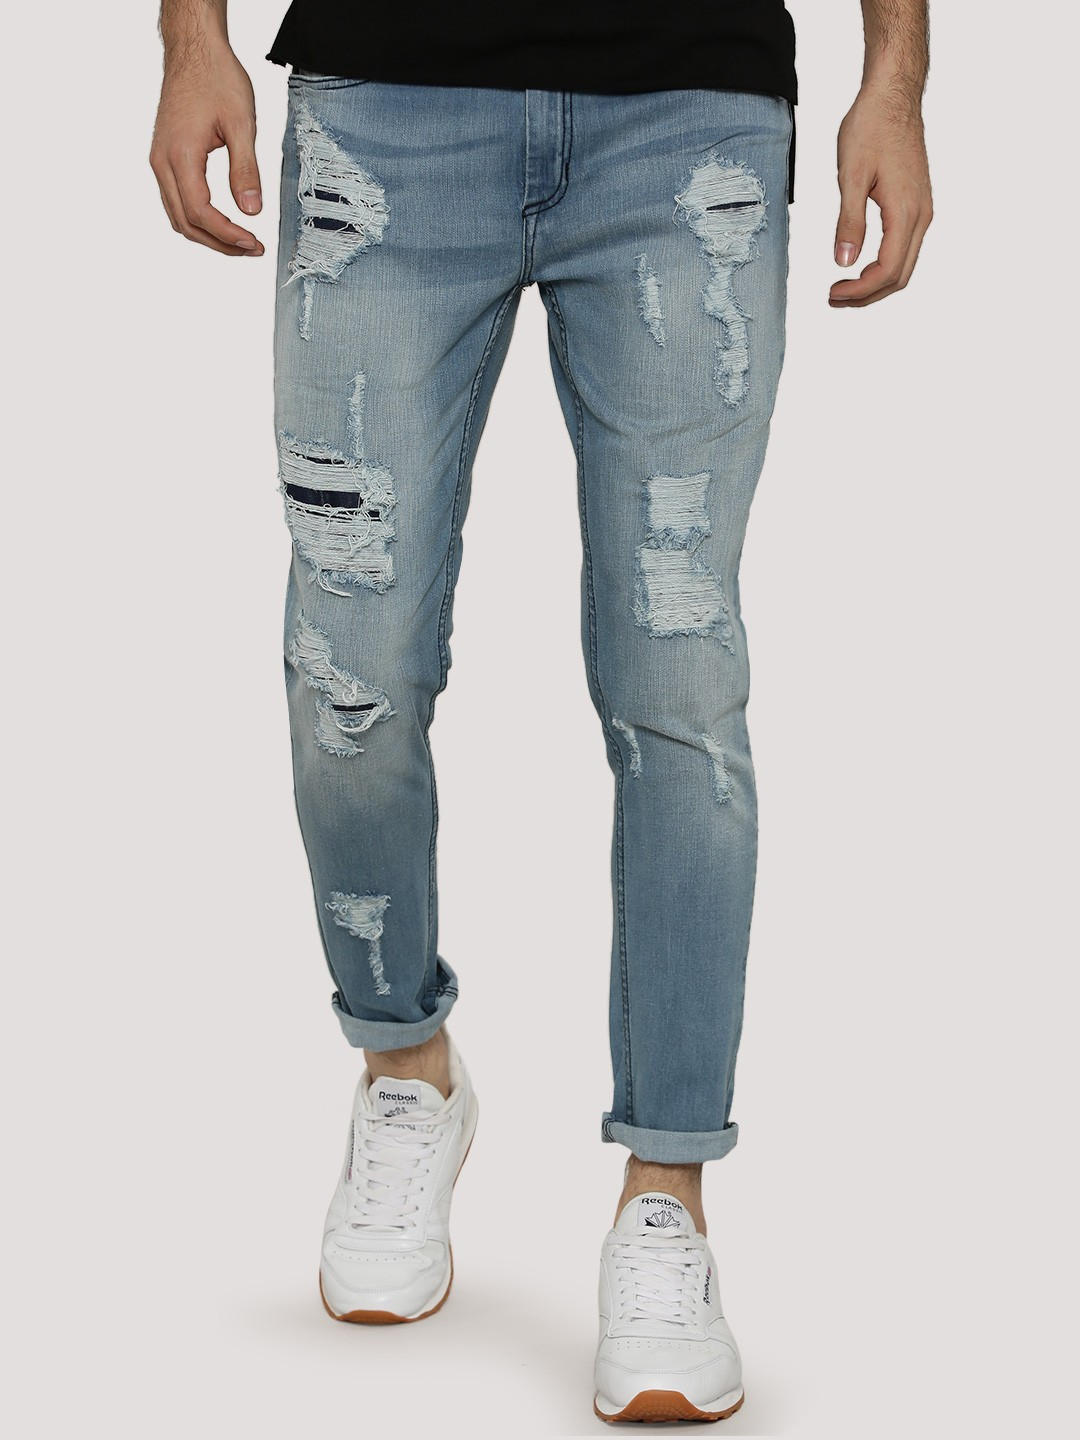 12 Best Ripped Jeans For Men 2017 ~ iButters- Celebrities, Style ...